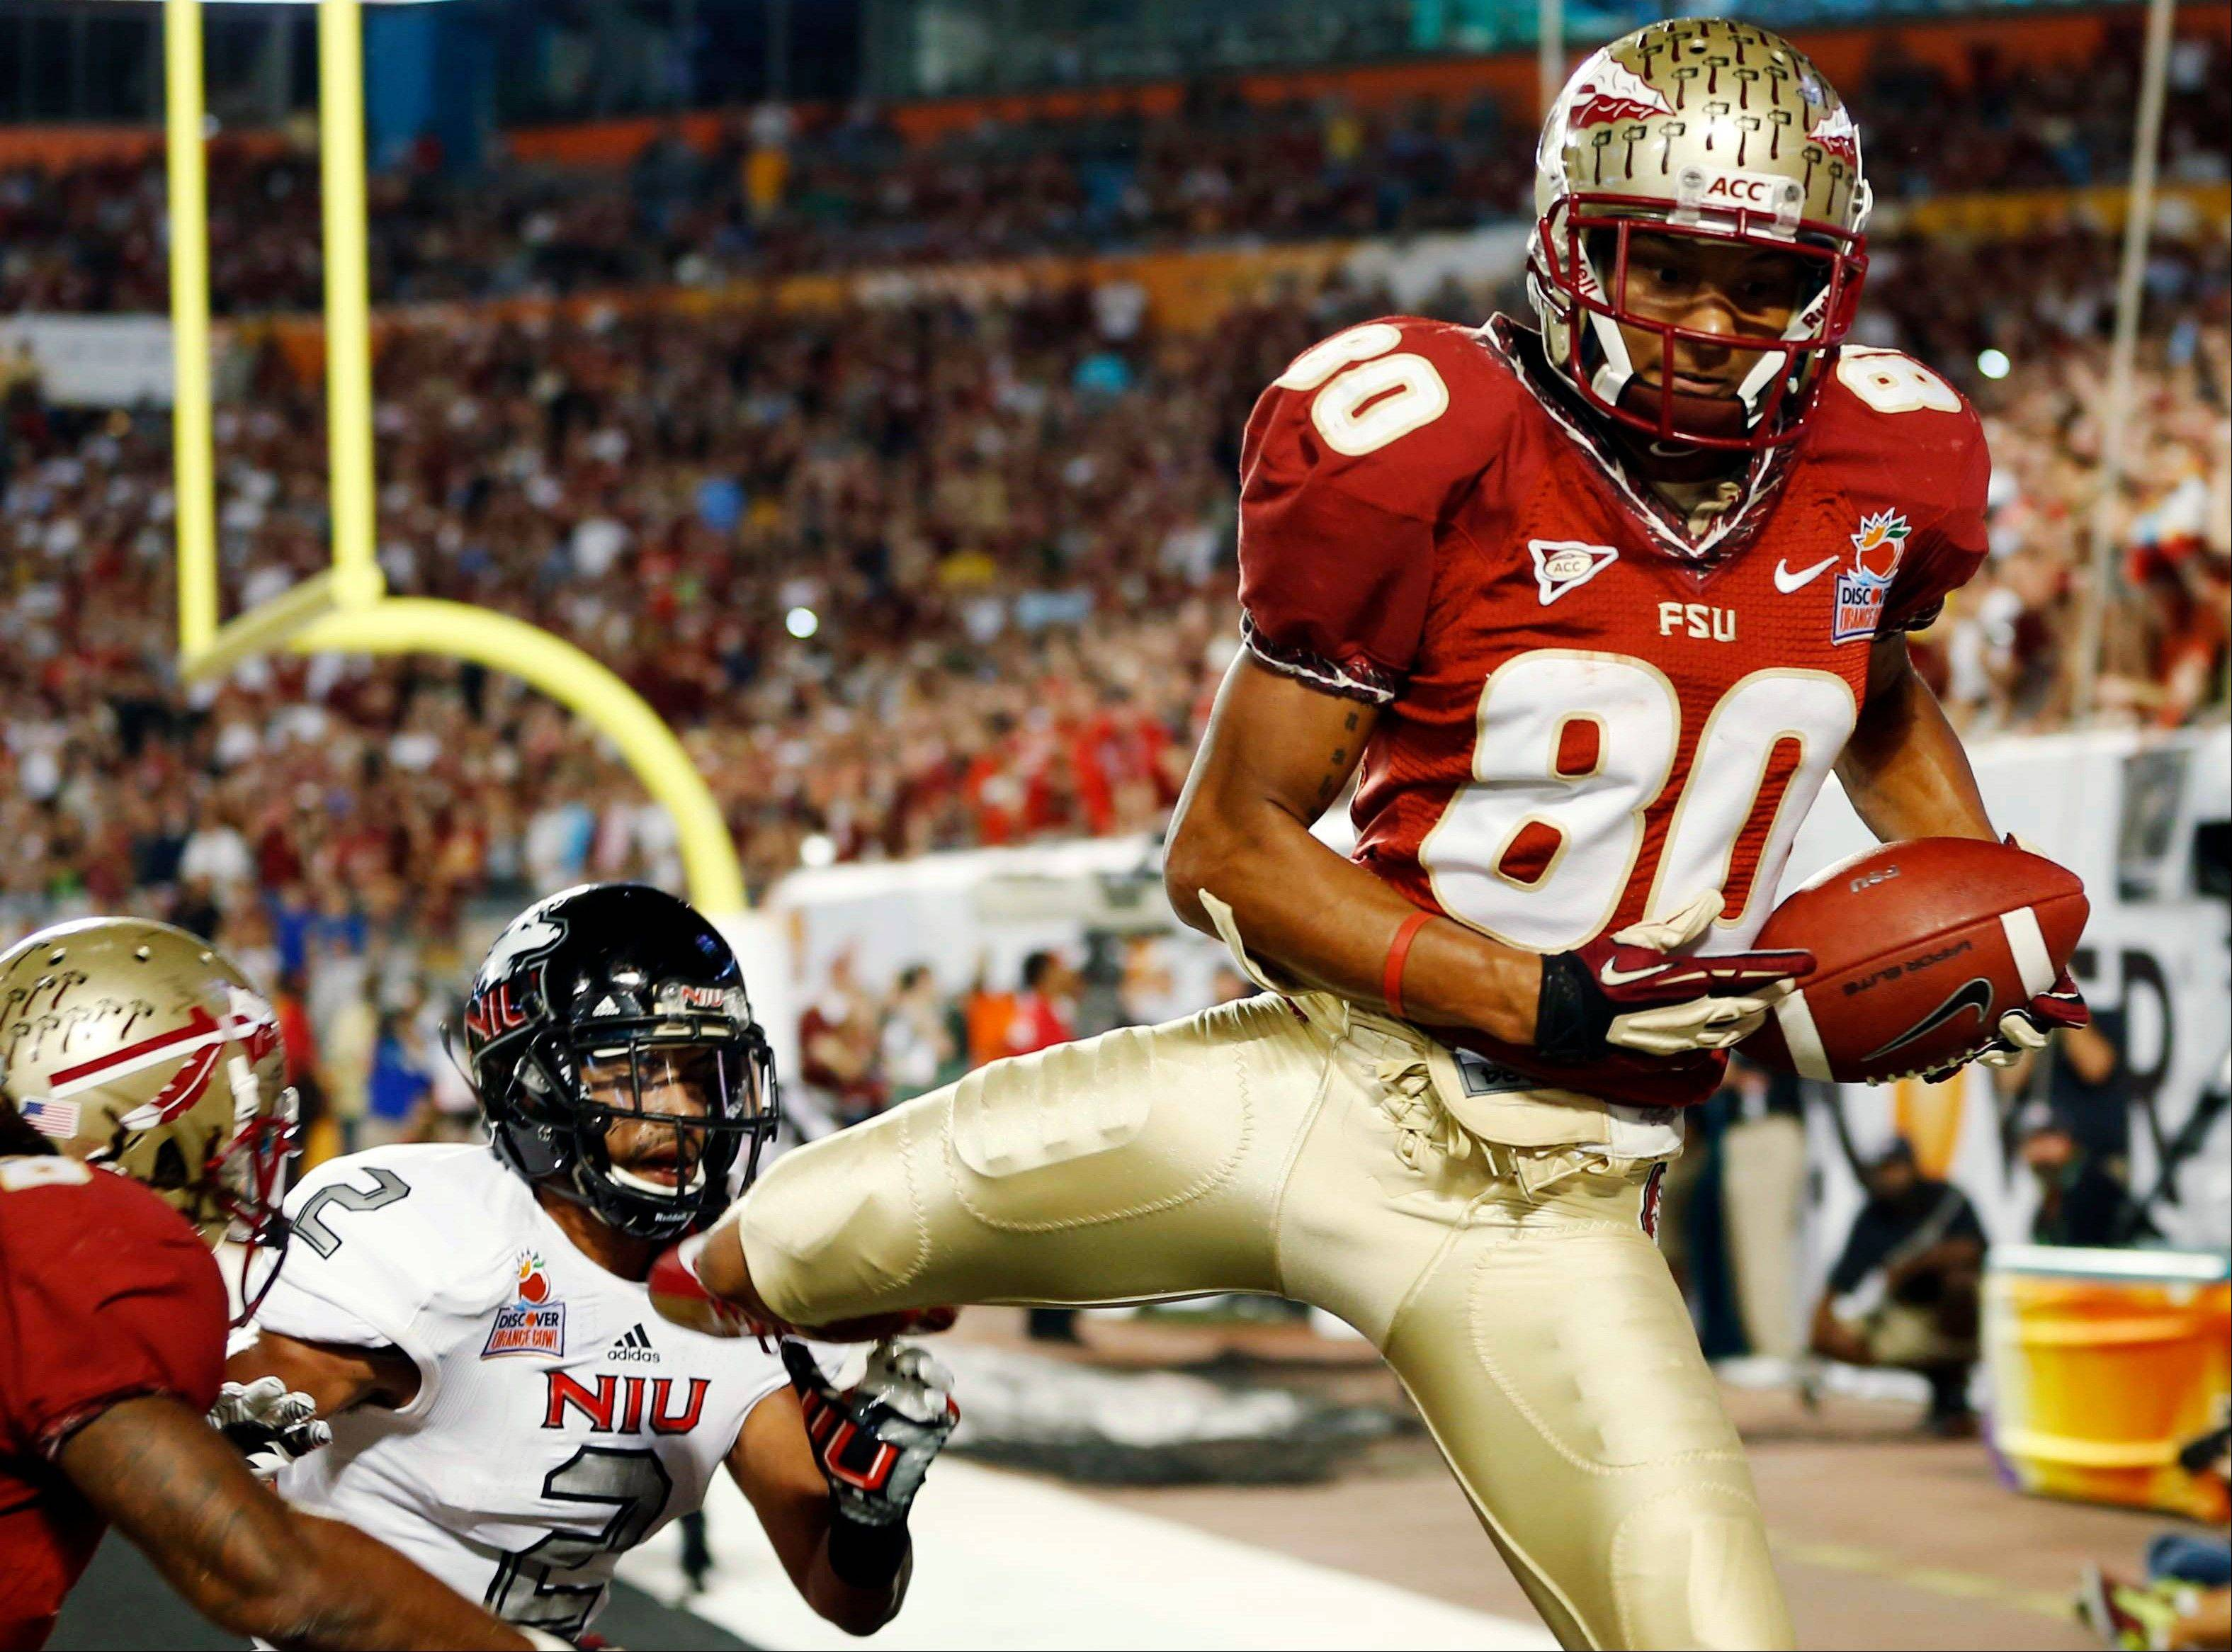 Florida State wide receiver Rashad Greene (80) pulls in a touchdown in the end zone during the first half of the Orange Bowl NCAA college football game against Northern Illinois, Tuesday, Jan. 1, 2013, in Miami.